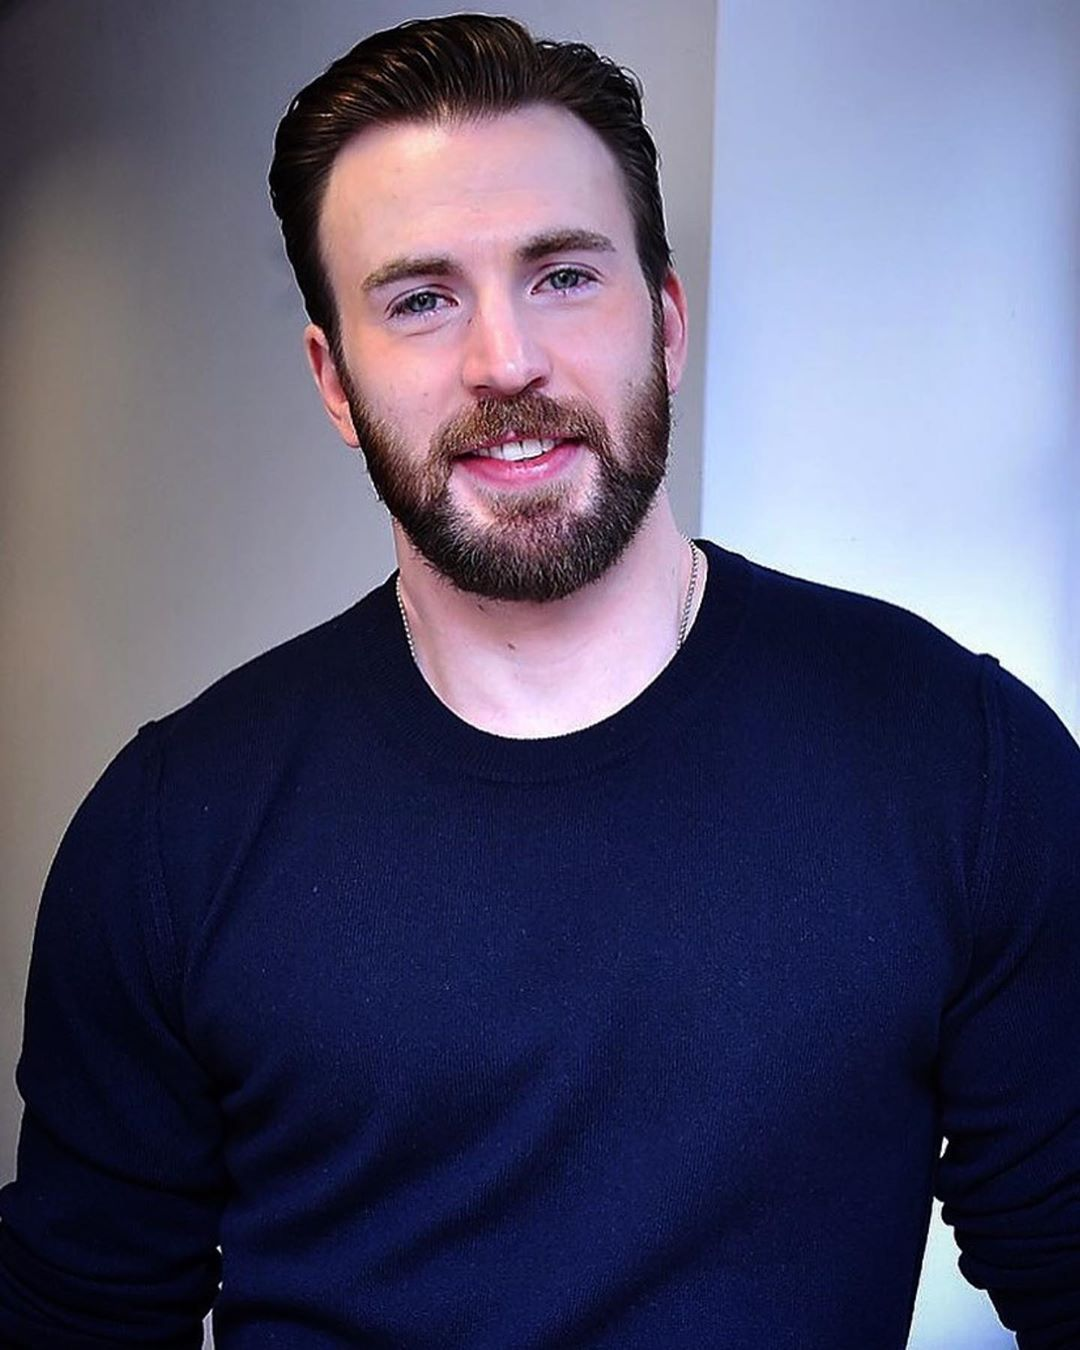 Pin By Monkey D Hancock On Chris Evans Makes Me Feel Some Type Of Way In 2020 Chris Evans Chris Christopher Evans